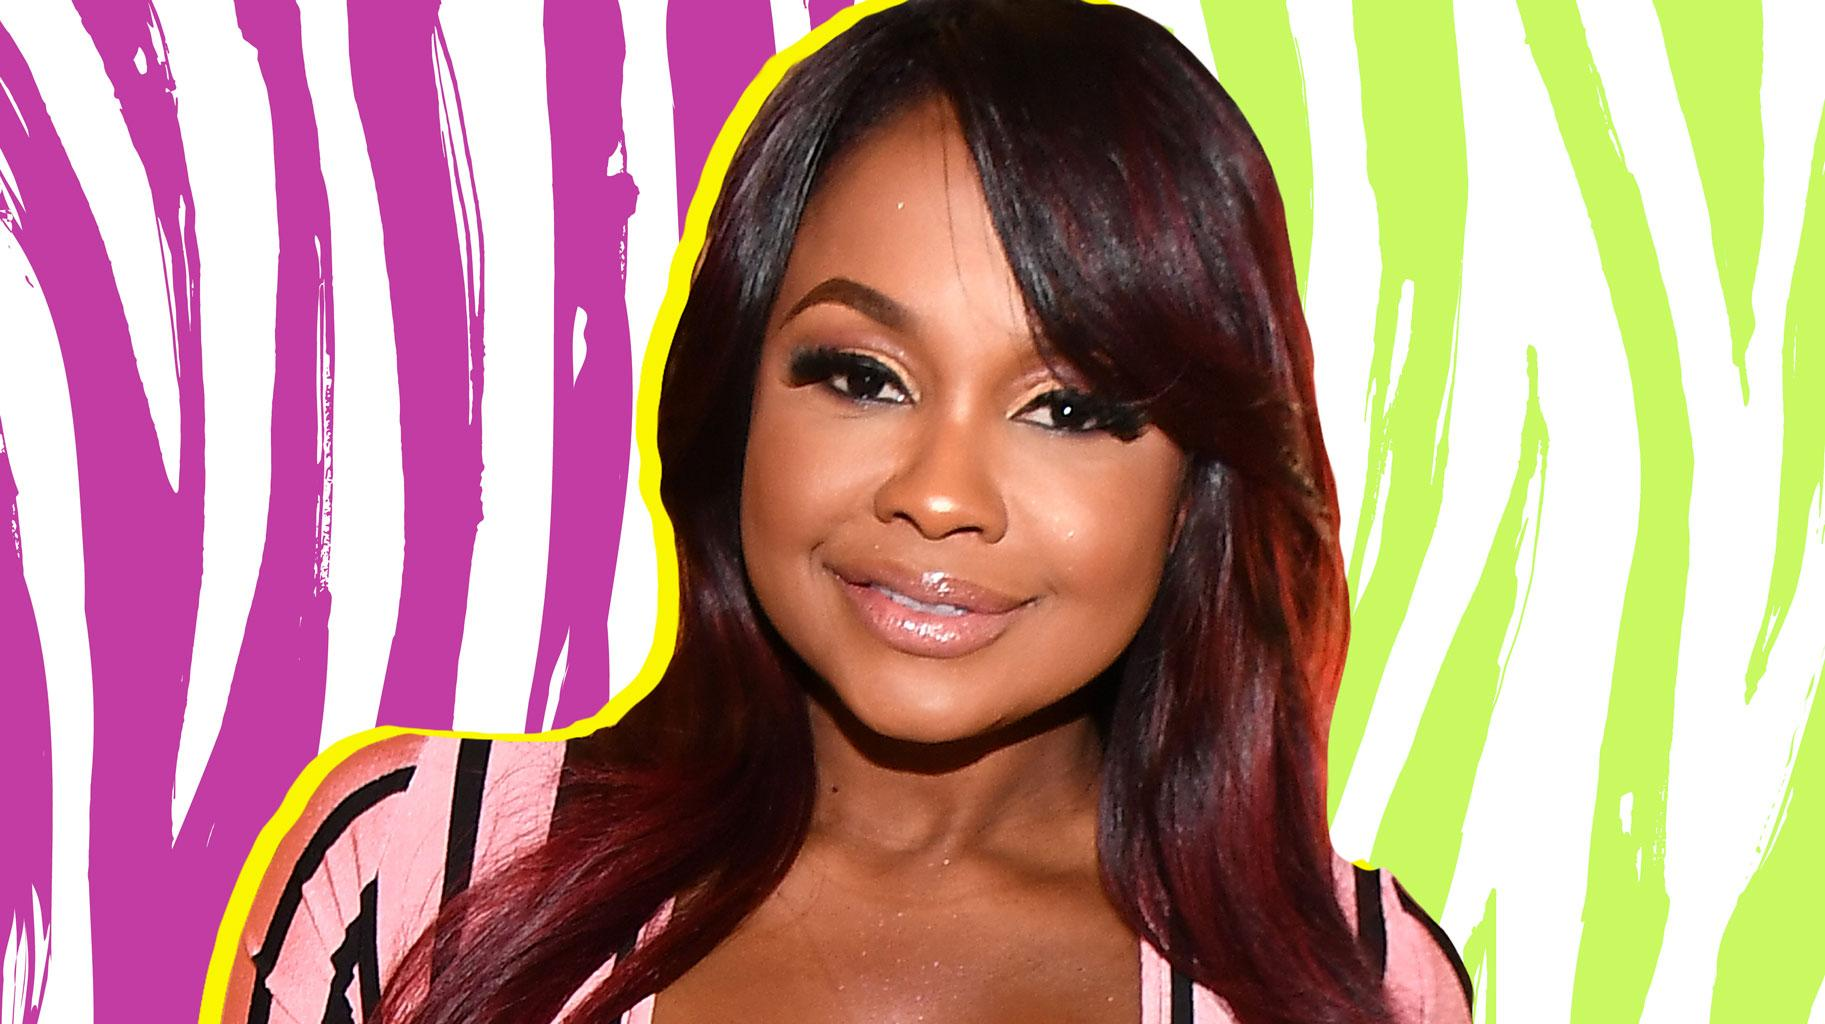 Phaedra Parks Looks Gorgeous In This Pink Dress - Hear Her Sensual Voice In This Video